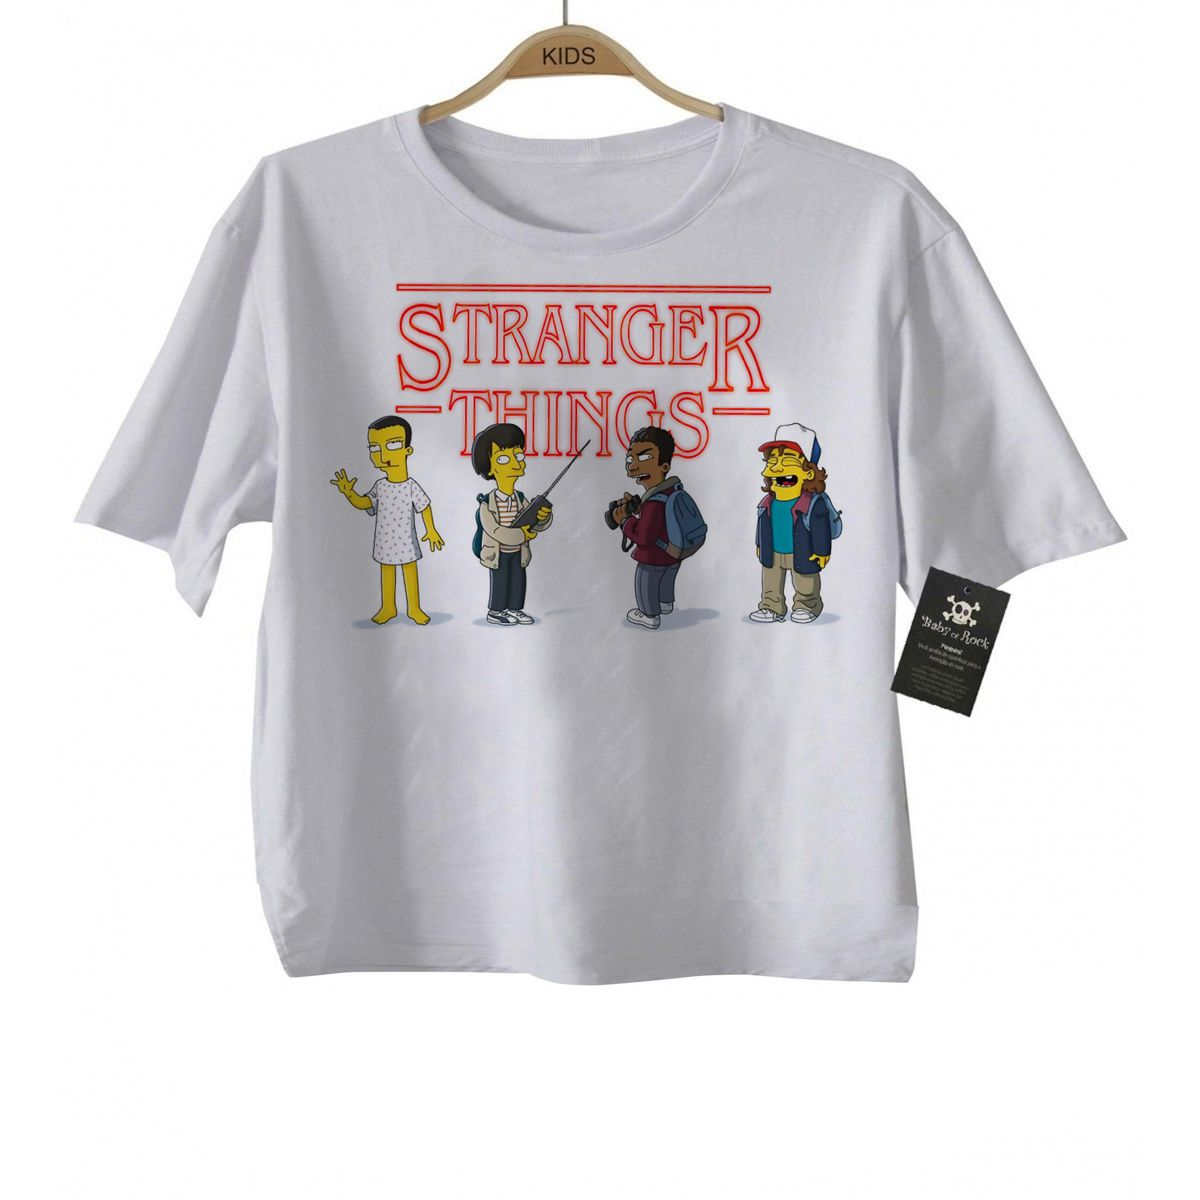 Camiseta Infantil Series Tv  Stranger Things Simpsons -  White  - Baby Monster - Body Bebe